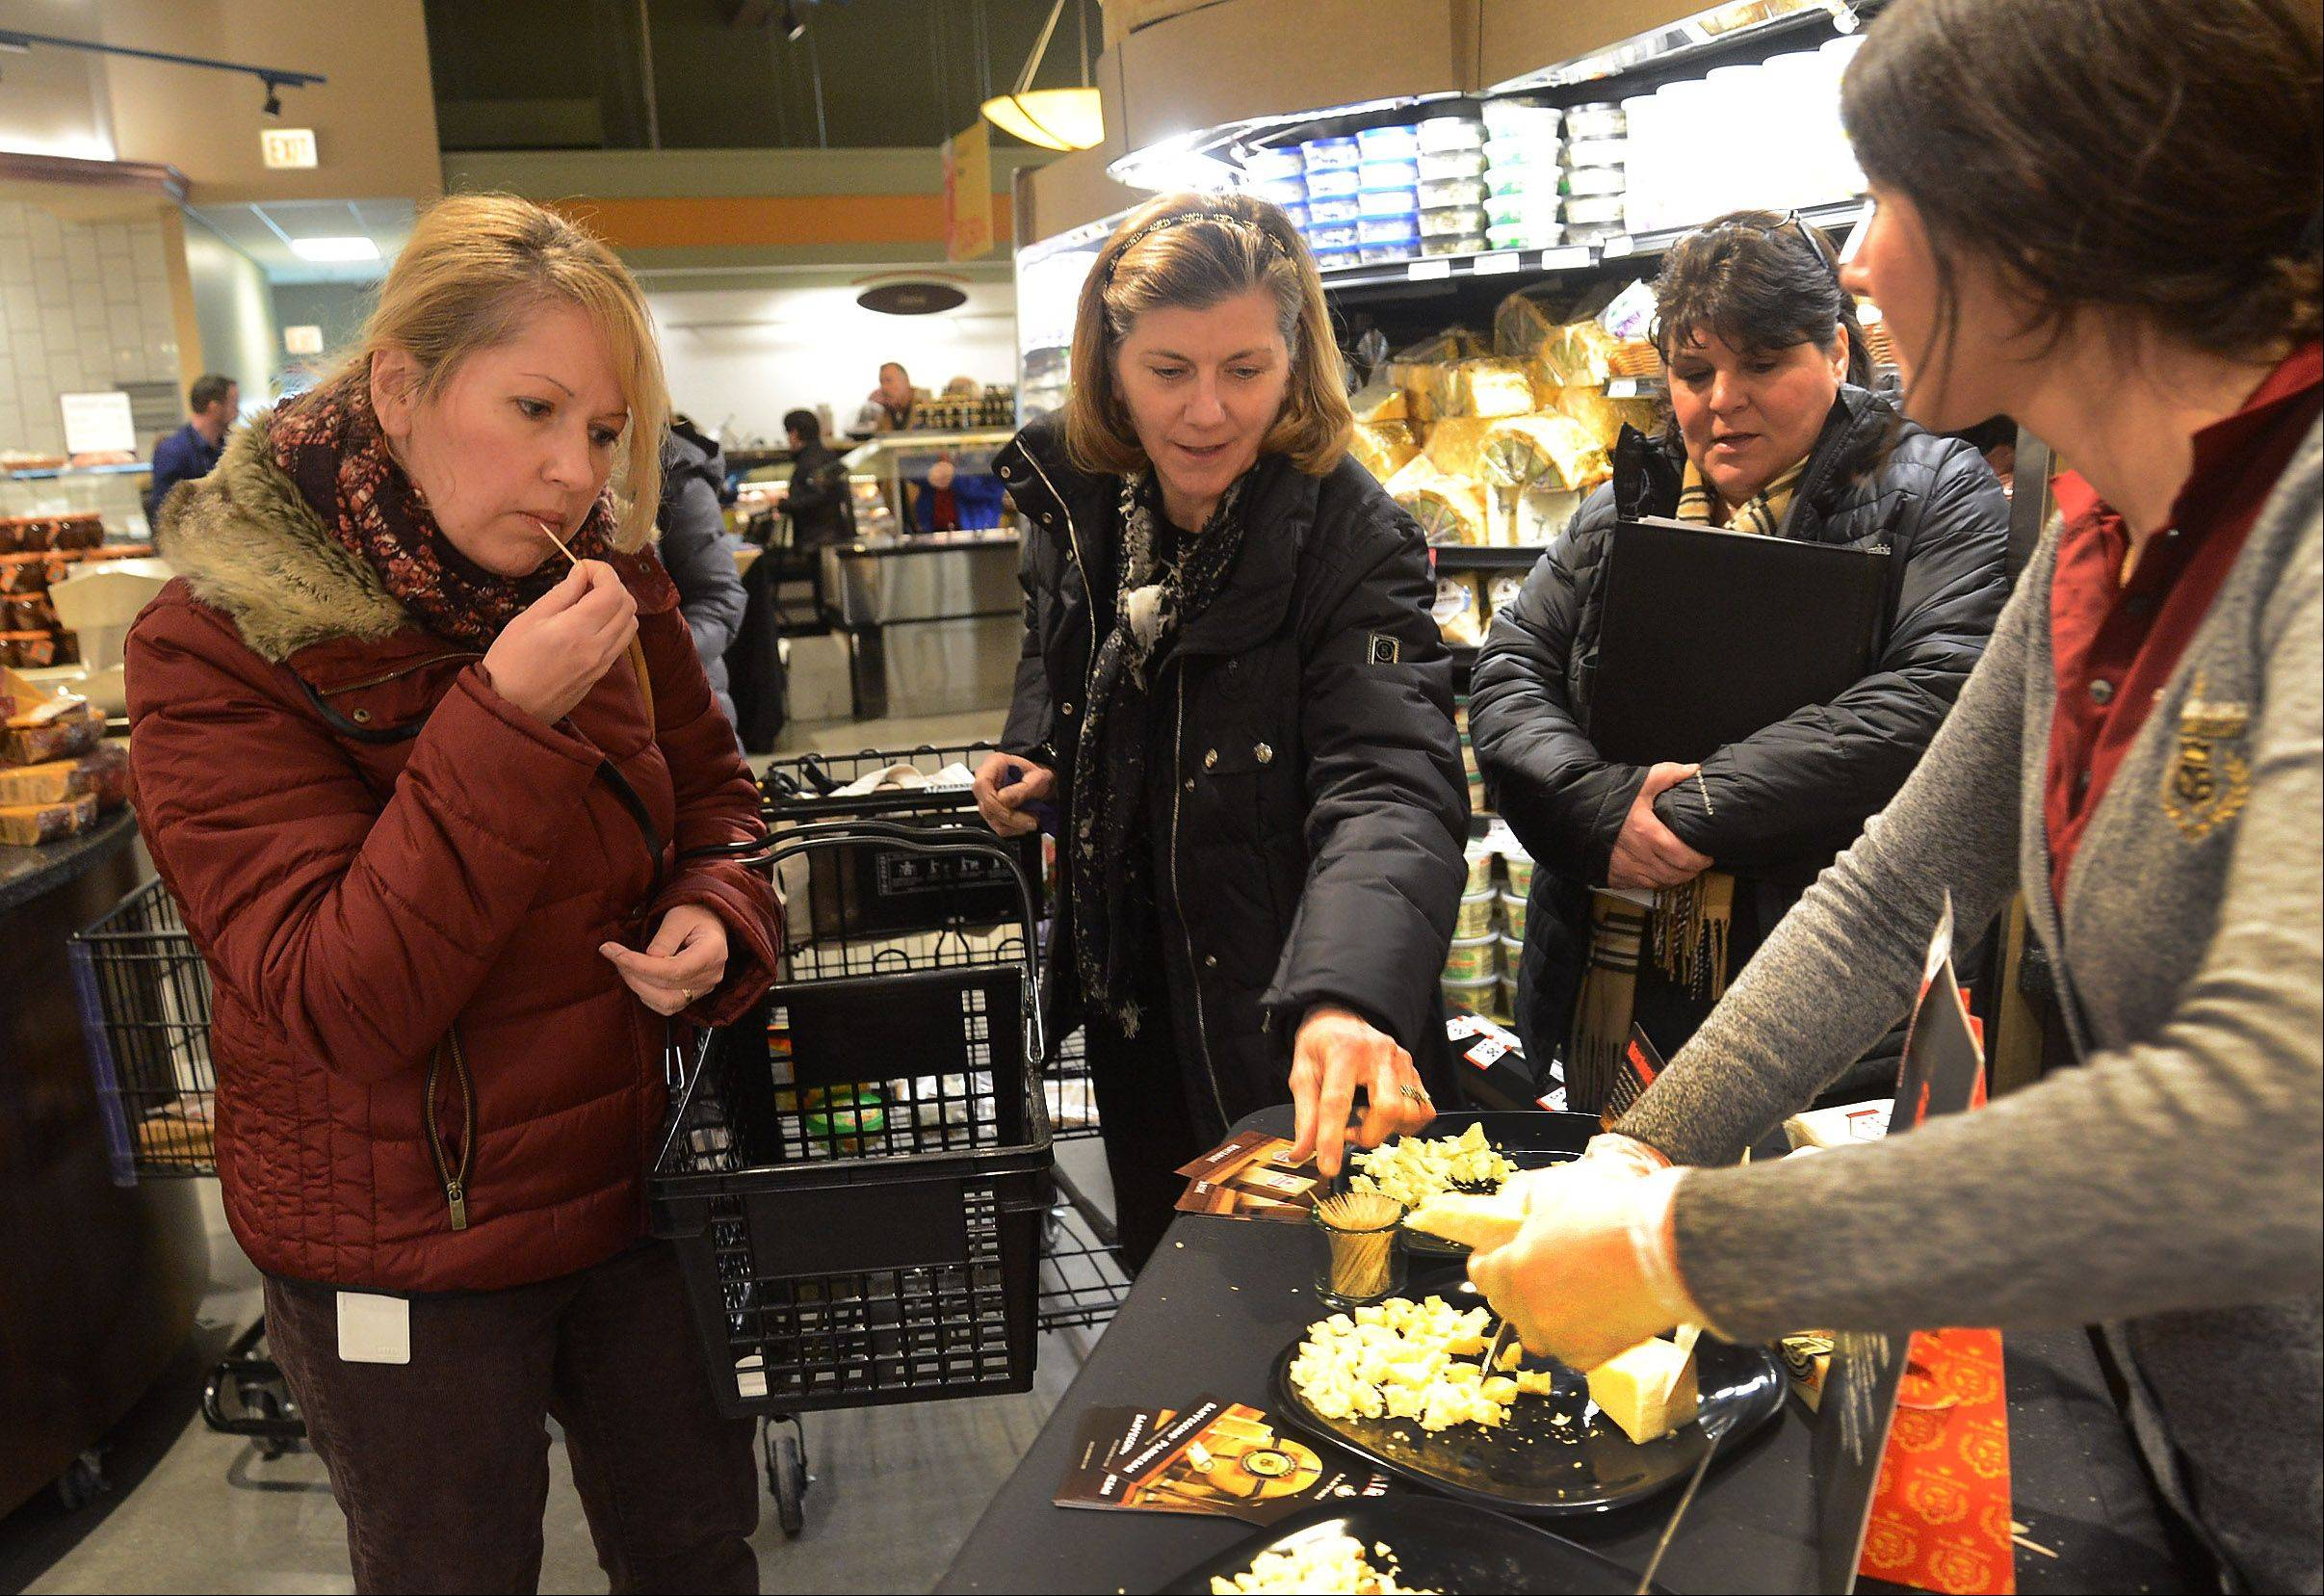 Joanna Renguso, left, of Wauconda, and Susan Kogan, center, of Long Grove, try some Sartori Cheese samples at the new Lake Zurich Mariano's grocery store that opened Tuesday.